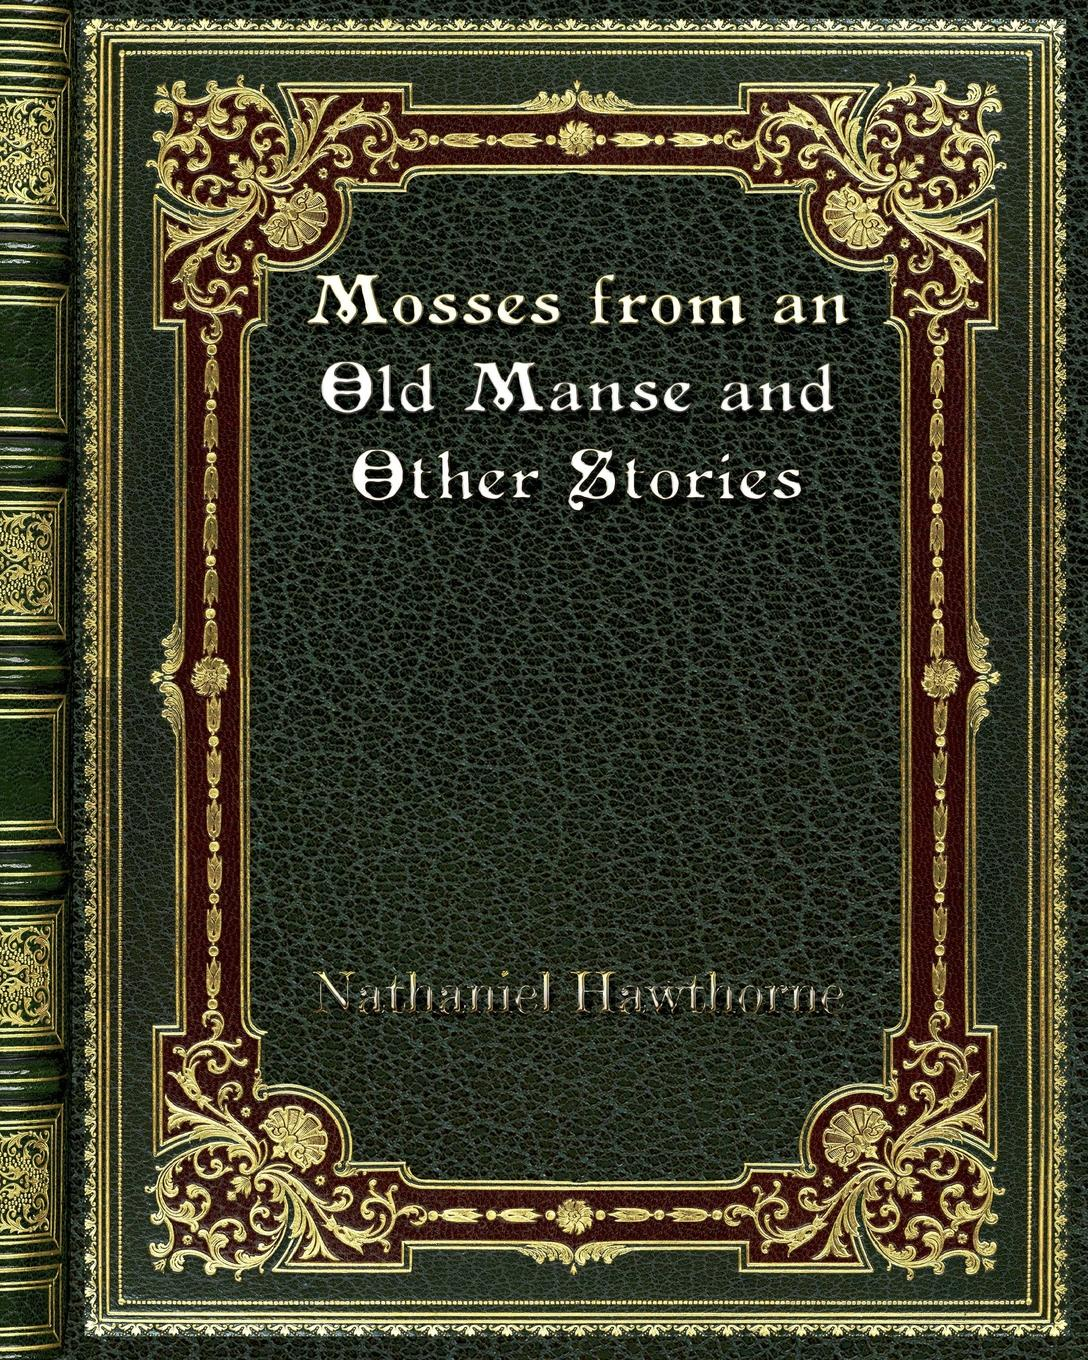 Hawthorne Nathaniel Mosses from an Old Manse and Other Stories